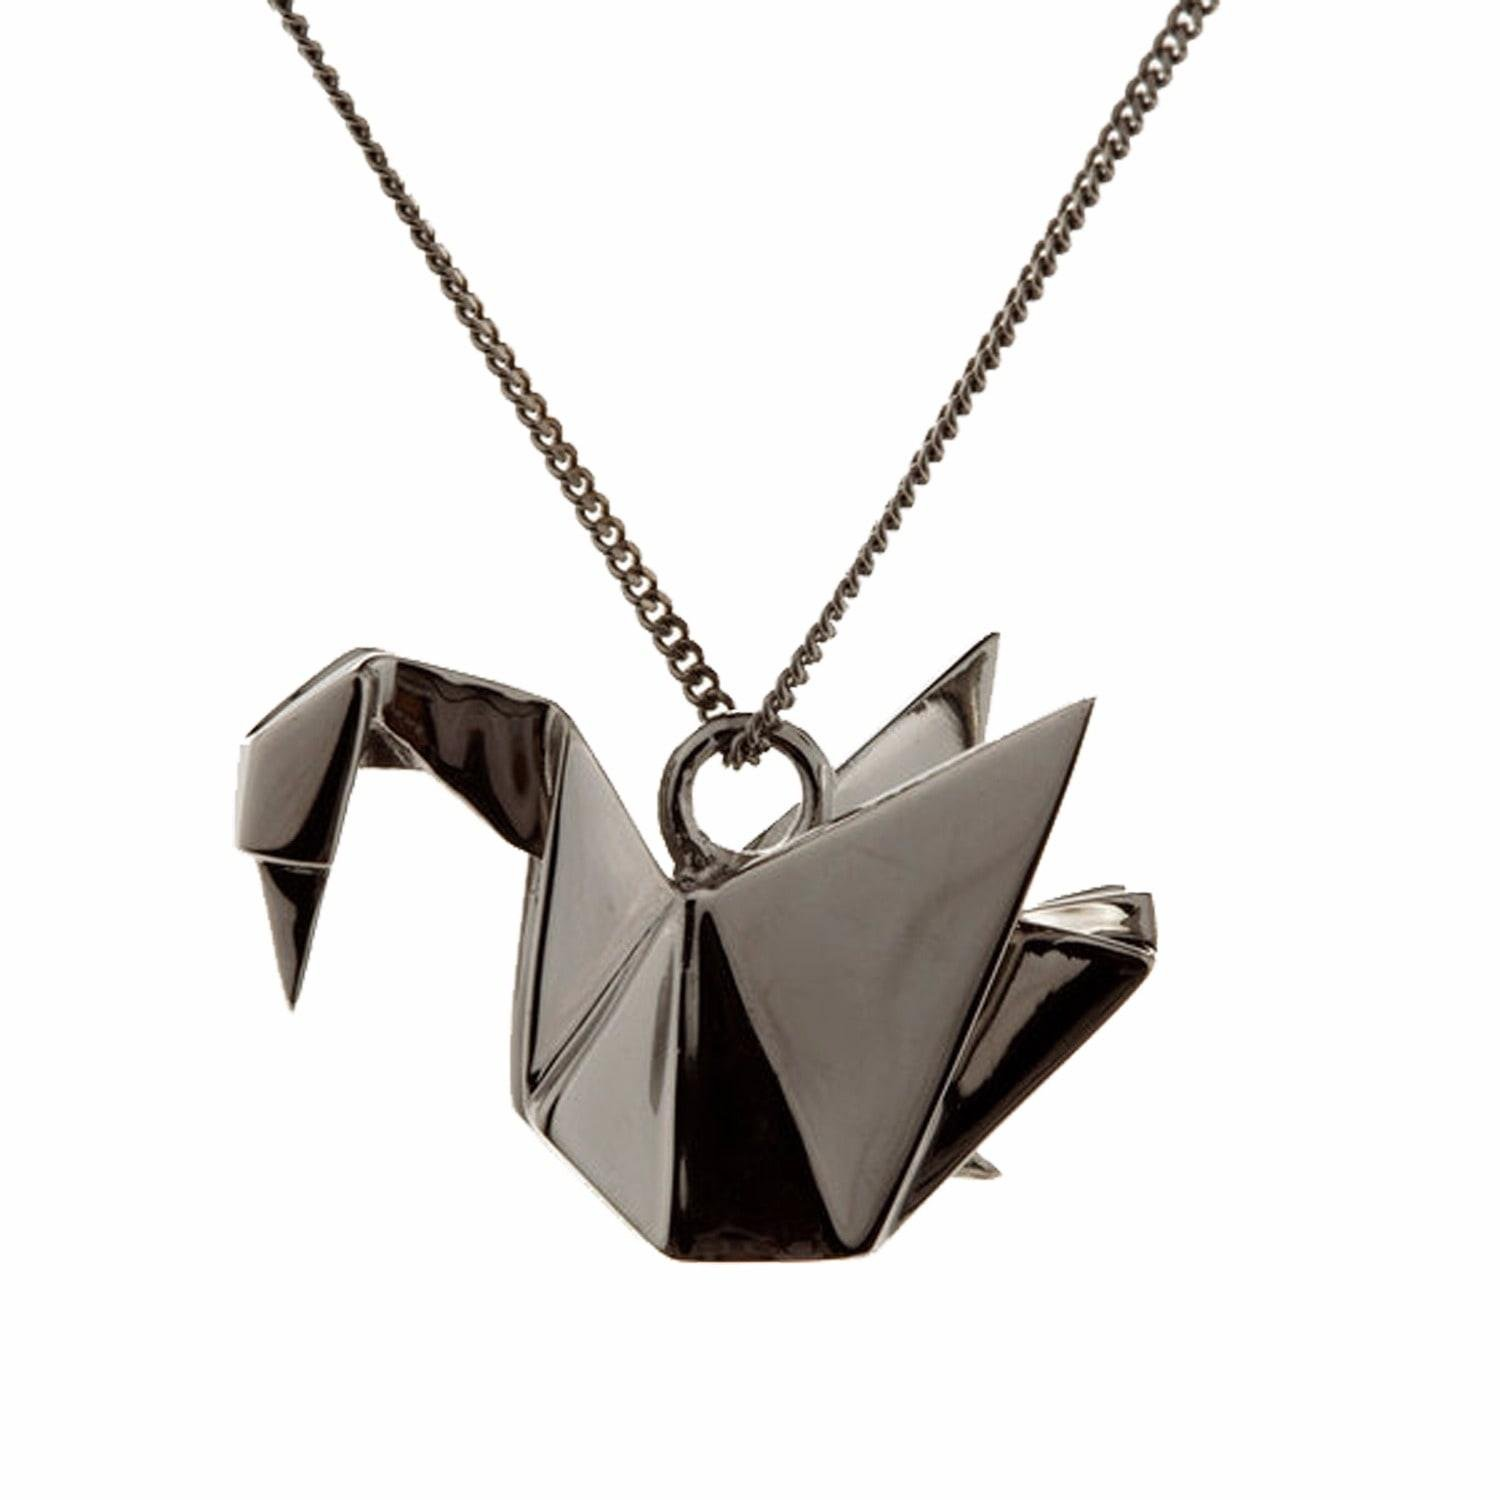 origami jewellery swan necklace sterling silver gun metal